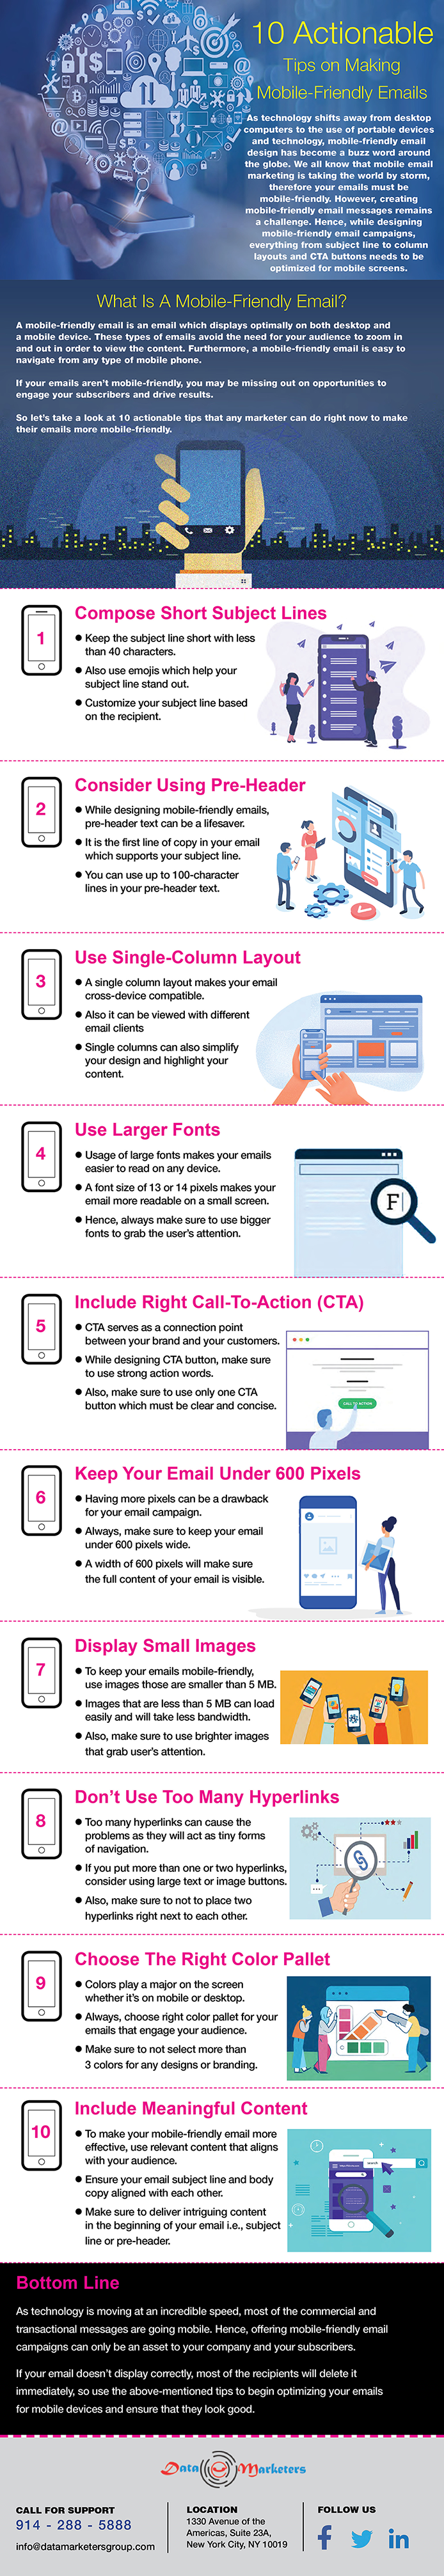 10 Actionable Tips on Making Mobile Friendly Emails Infographic | Data Marketers Group